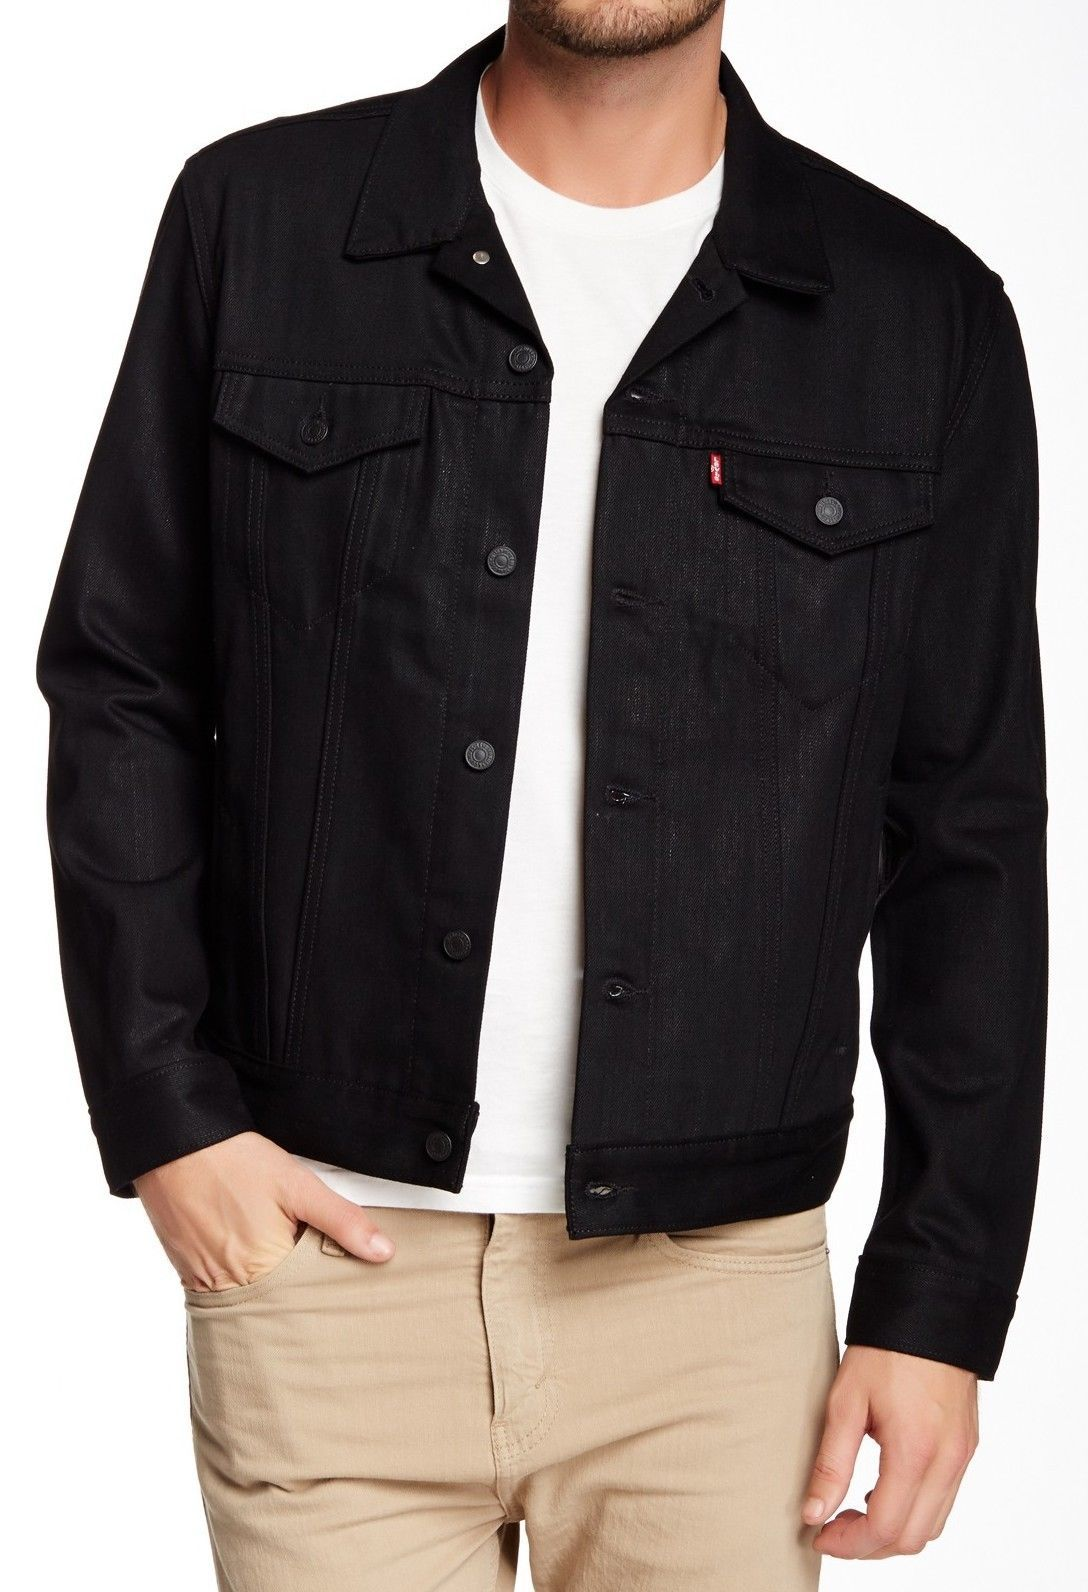 NEW LEVI'S MEN'S PREMIUM COTTON BUTTON UP DENIM JEANS JACKET BLACK 72335068